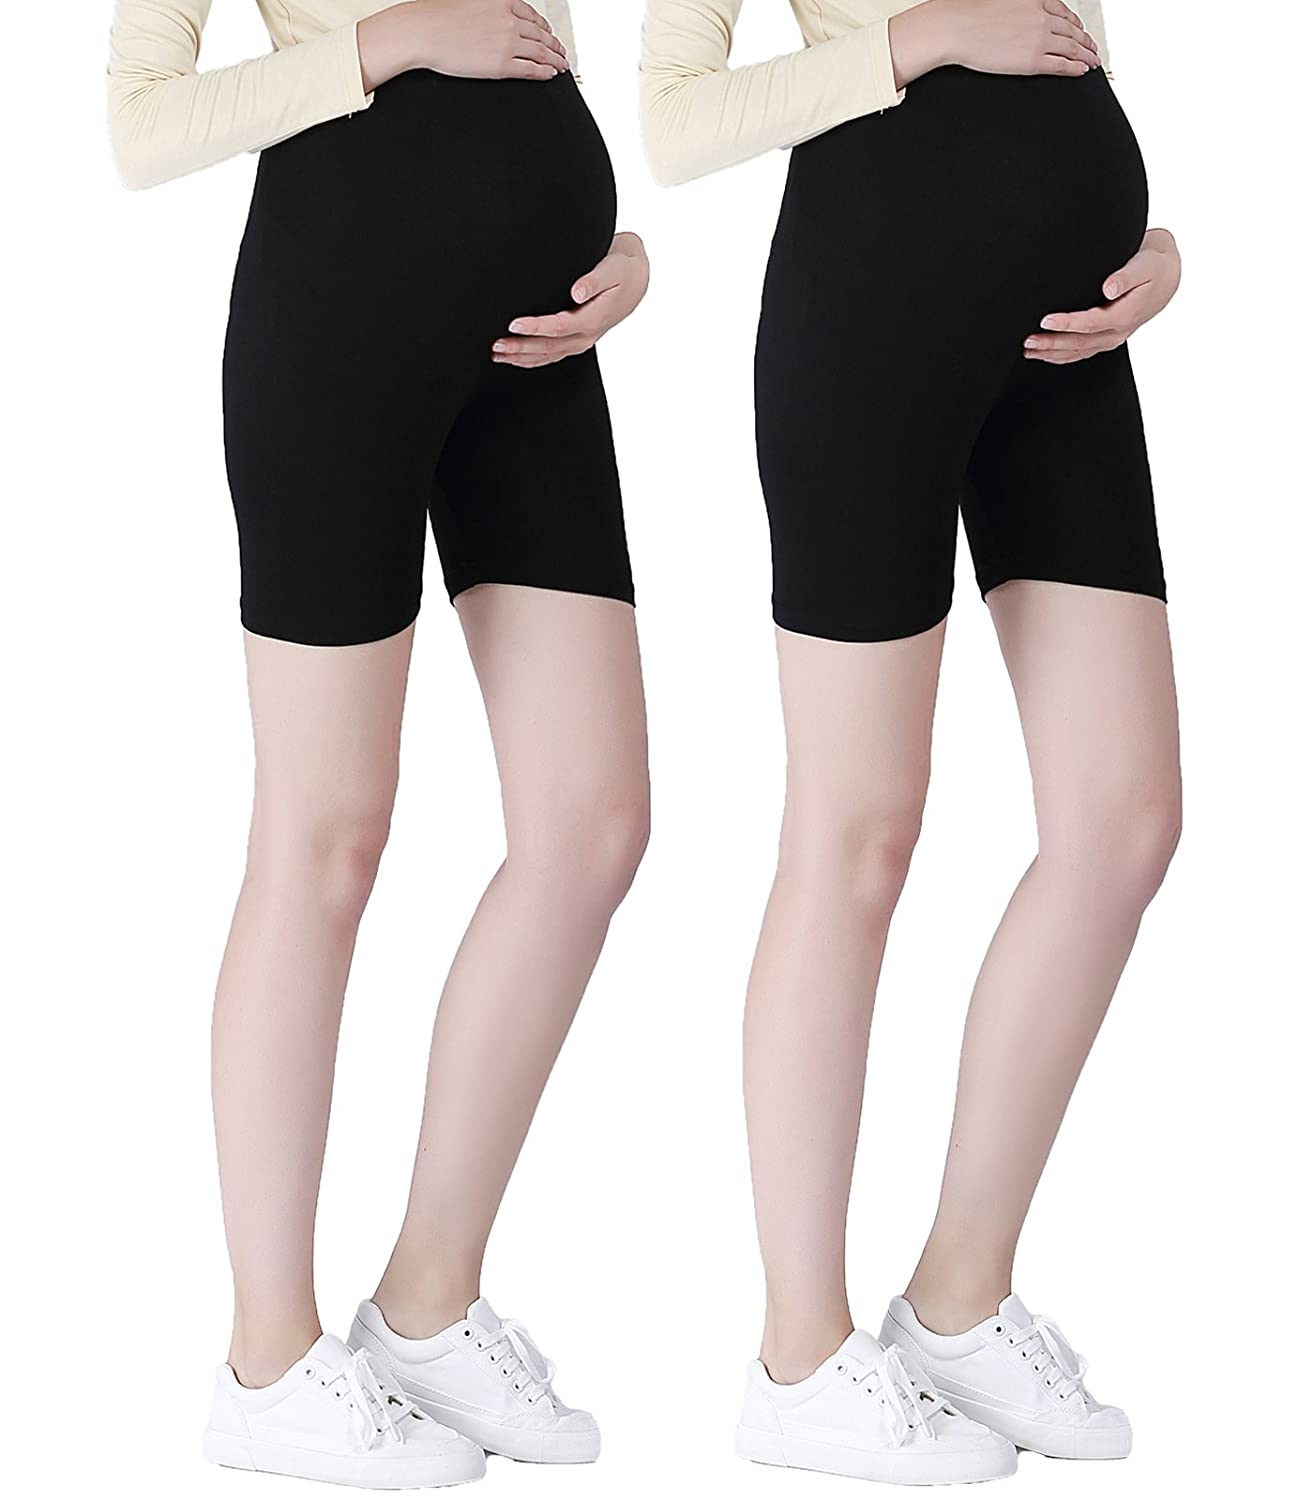 Liang Rou Maternity Thin Spandex Short Safety Leggings Black Baifu International Limited PL8830-$P